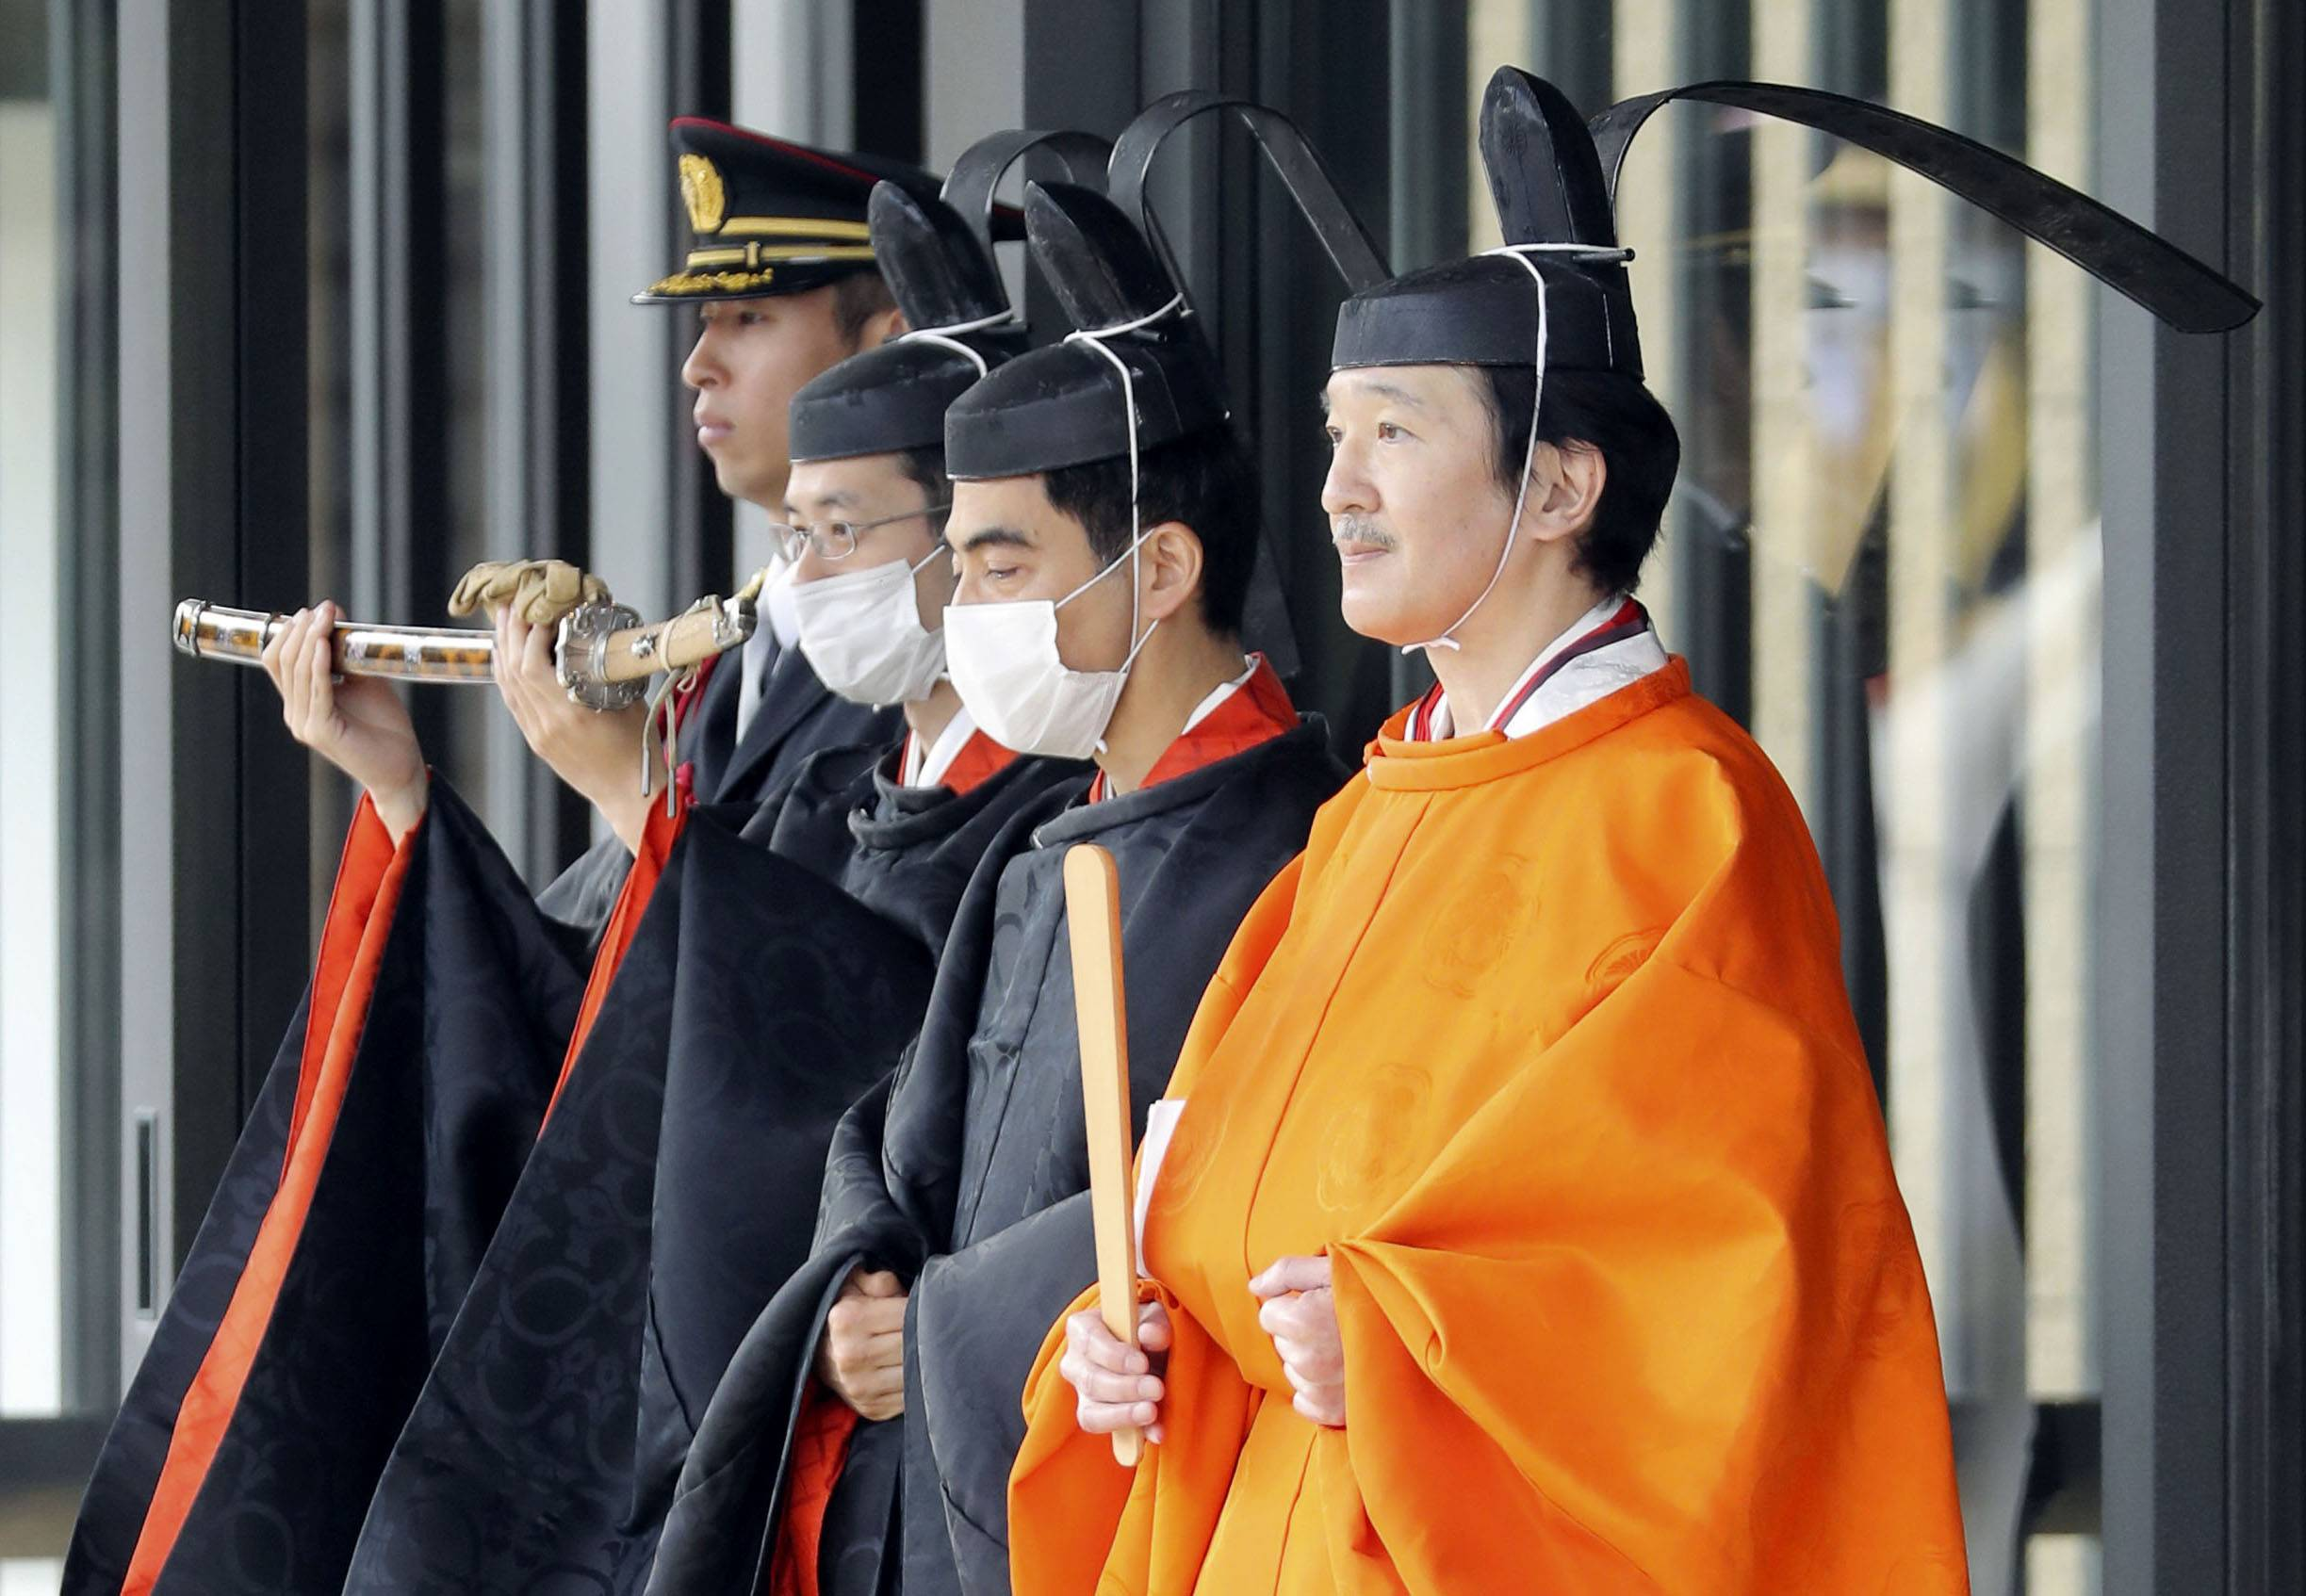 Crown Prince Akishino (right) is seen at the Imperial Palace on Nov. 9 following the Rikkoshi Senmei no Gi ceremony held as part of a series of imperial succession rituals. With the series of rituals related to the enthronement of Emperor Naruhito having been completed, the government is in the process of setting up an expert panel to discuss ways to ensure stable imperial succession. | POOL / VIA KYODO